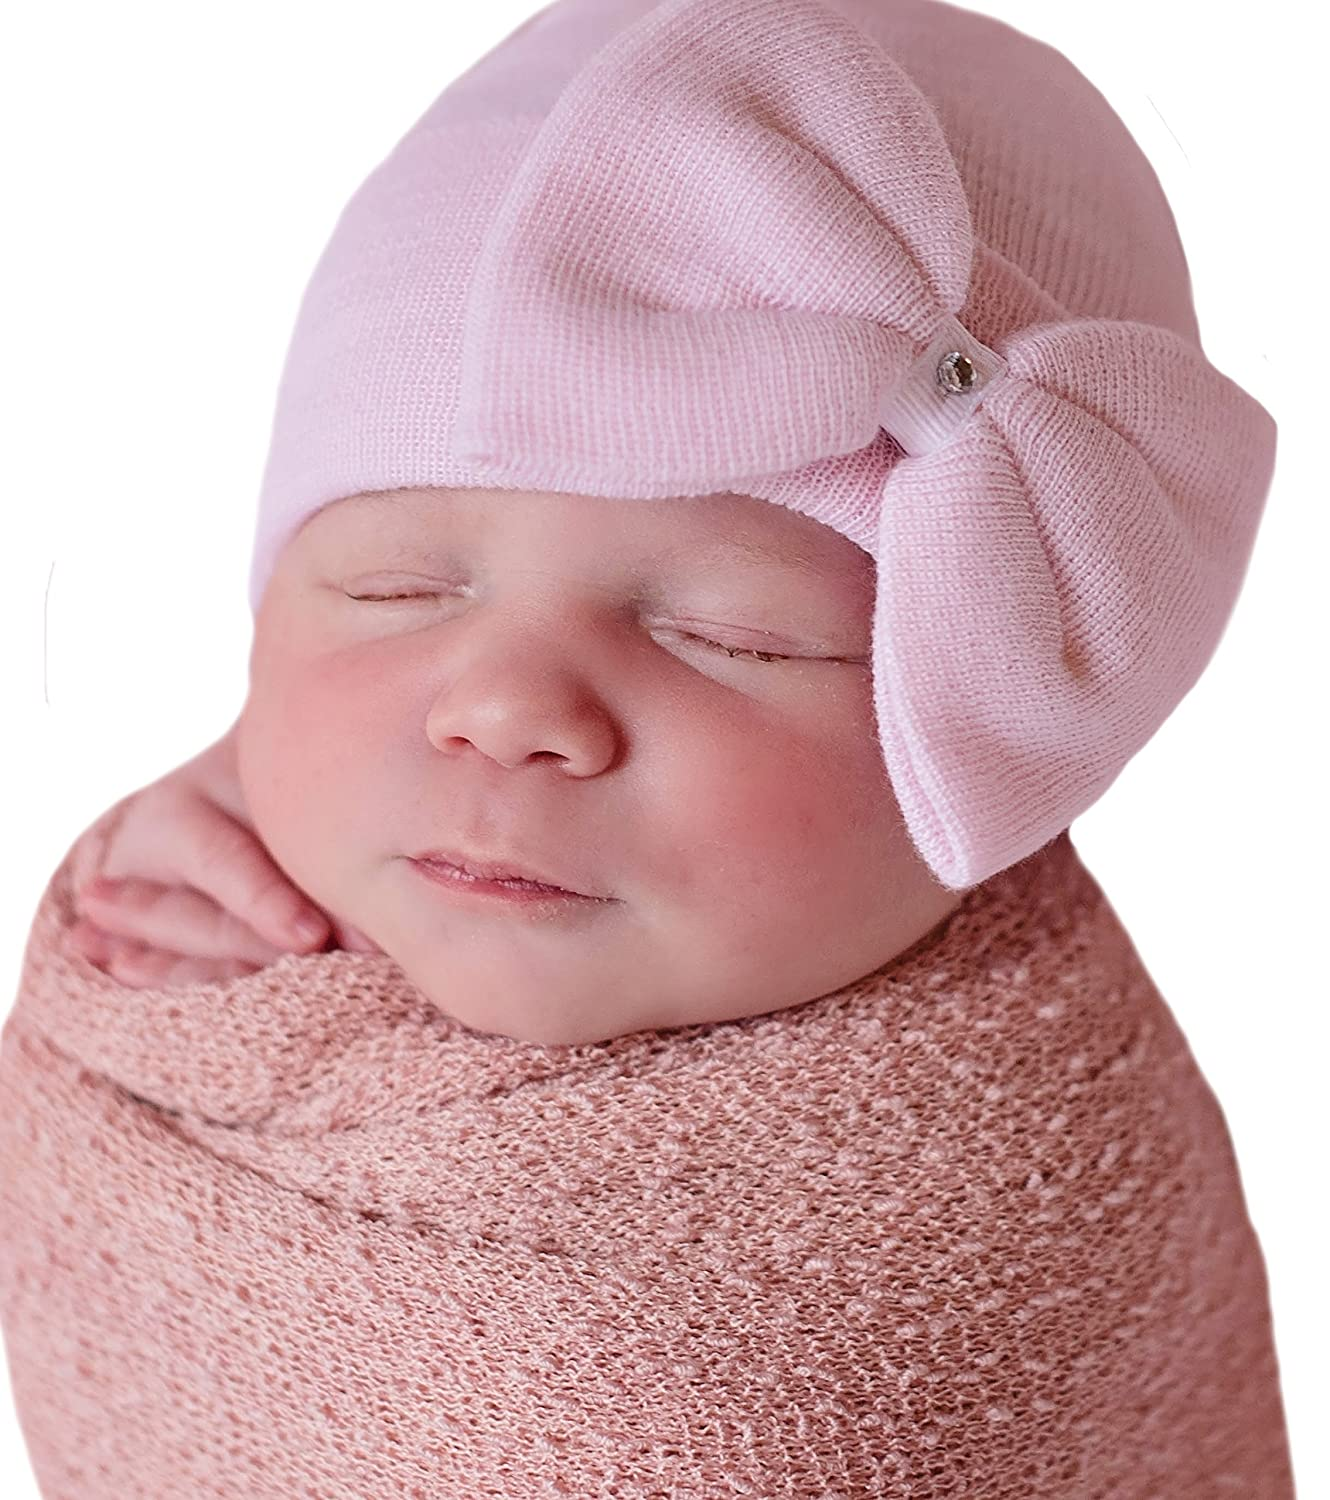 Melondipity Girls Newborn Pink Big Bow with Gem Hospital Baby Hat - Handmade in USA Melondipity Baby Hats